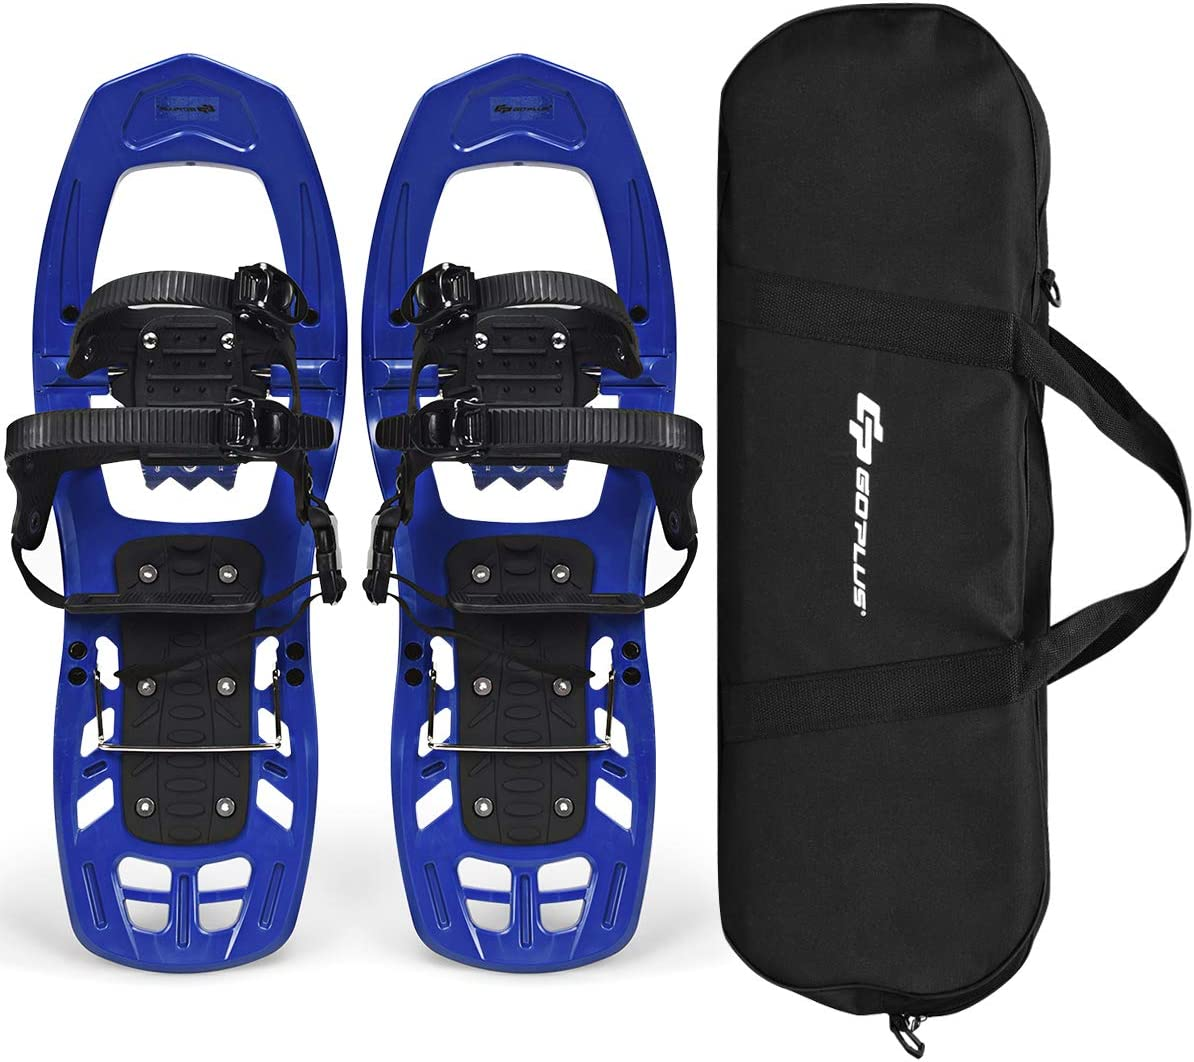 Goplus 22-inch Snowshoes for Men and Women, Lightweight All Terrain Snow Shoes with Heel Lift, Adjustable Ratchet Bindings, Hard Rack Grip Teeth and Carrying Tote Bag